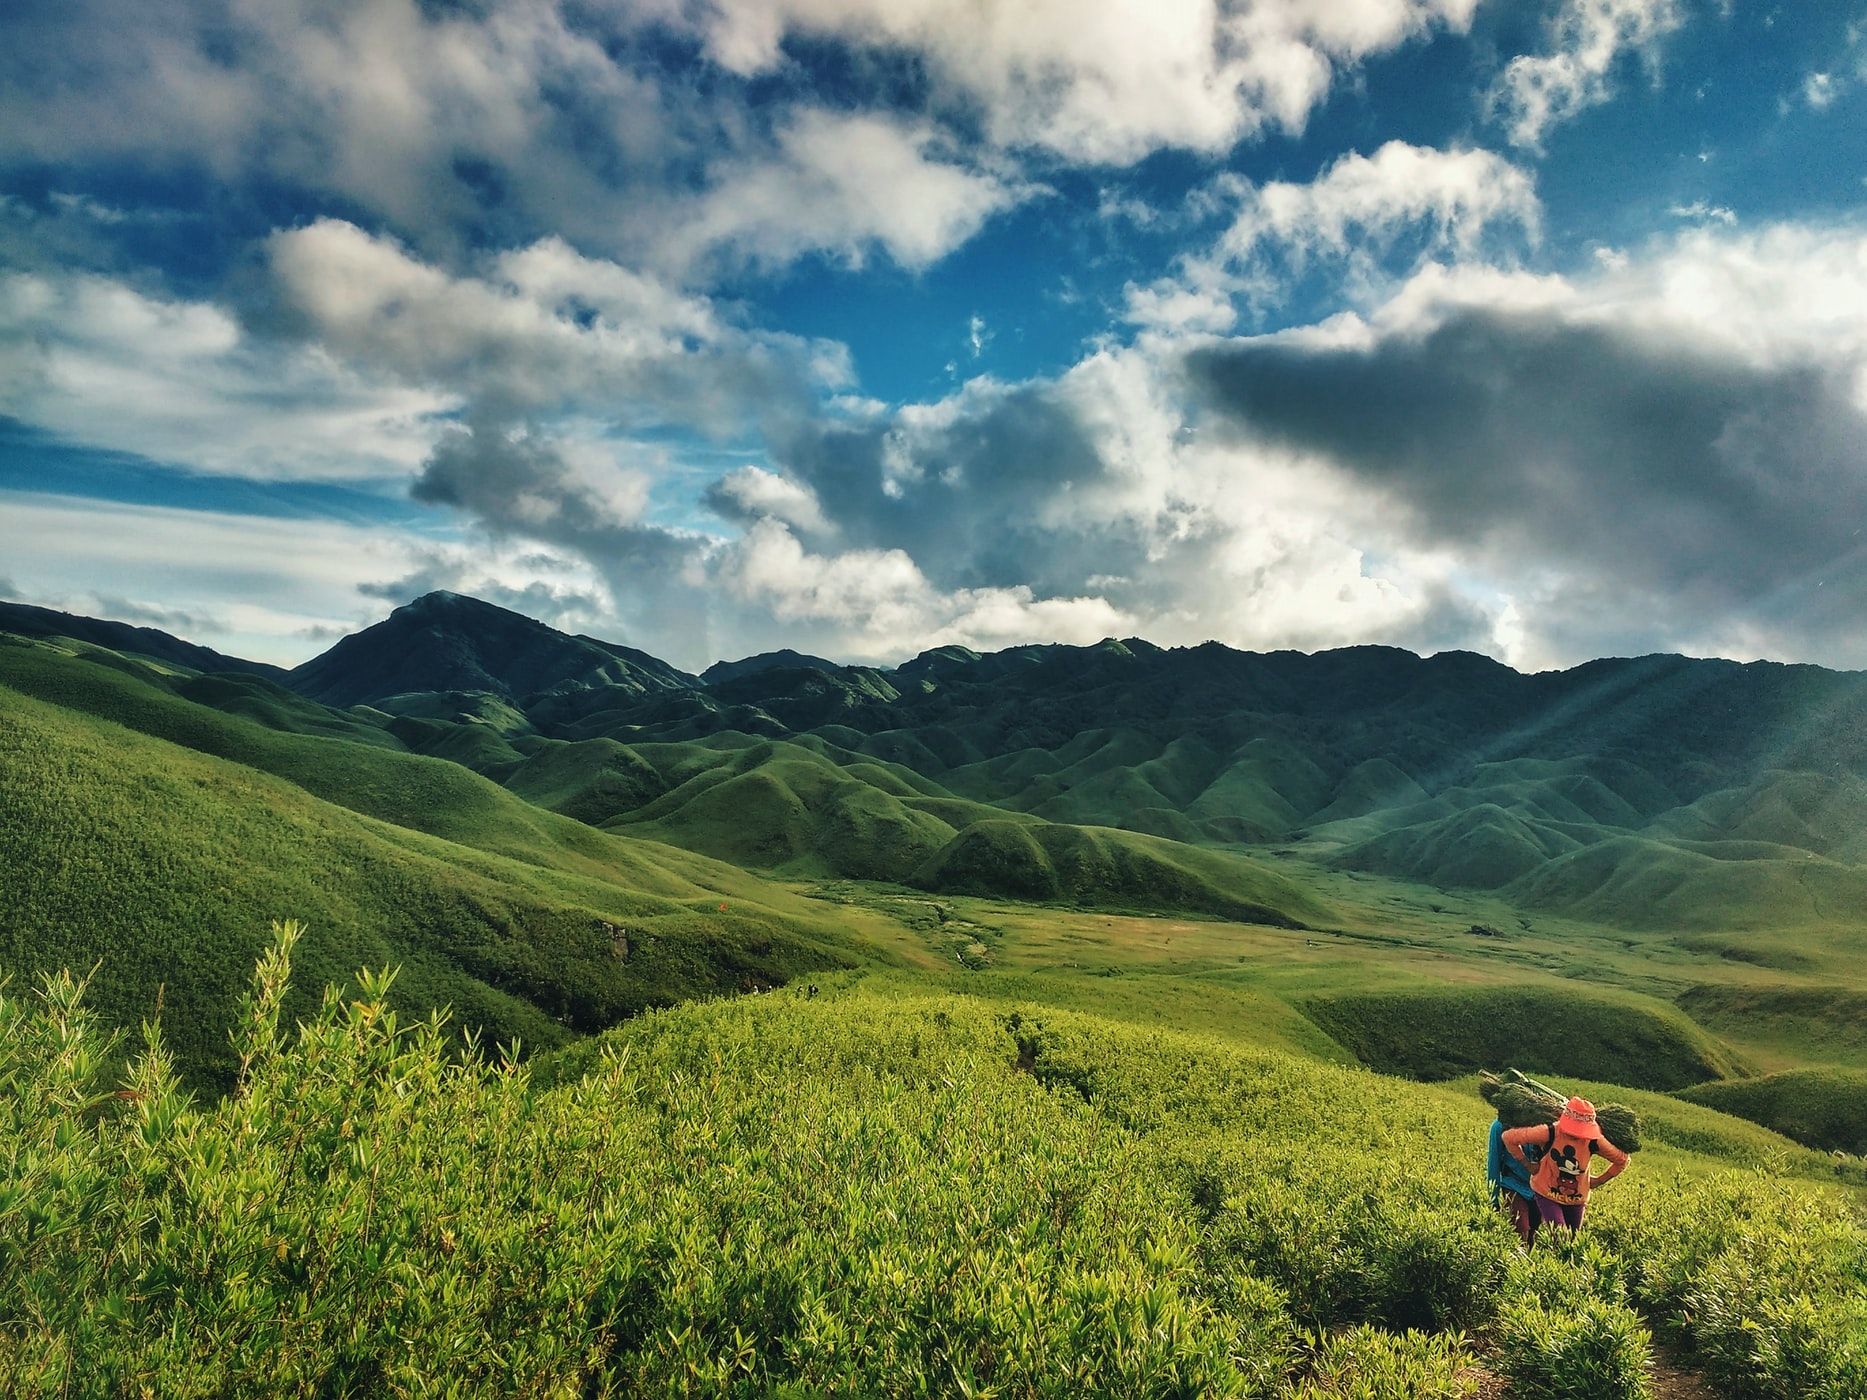 Views of the Dzükou valley, on the borders of Nagaland and Manipur